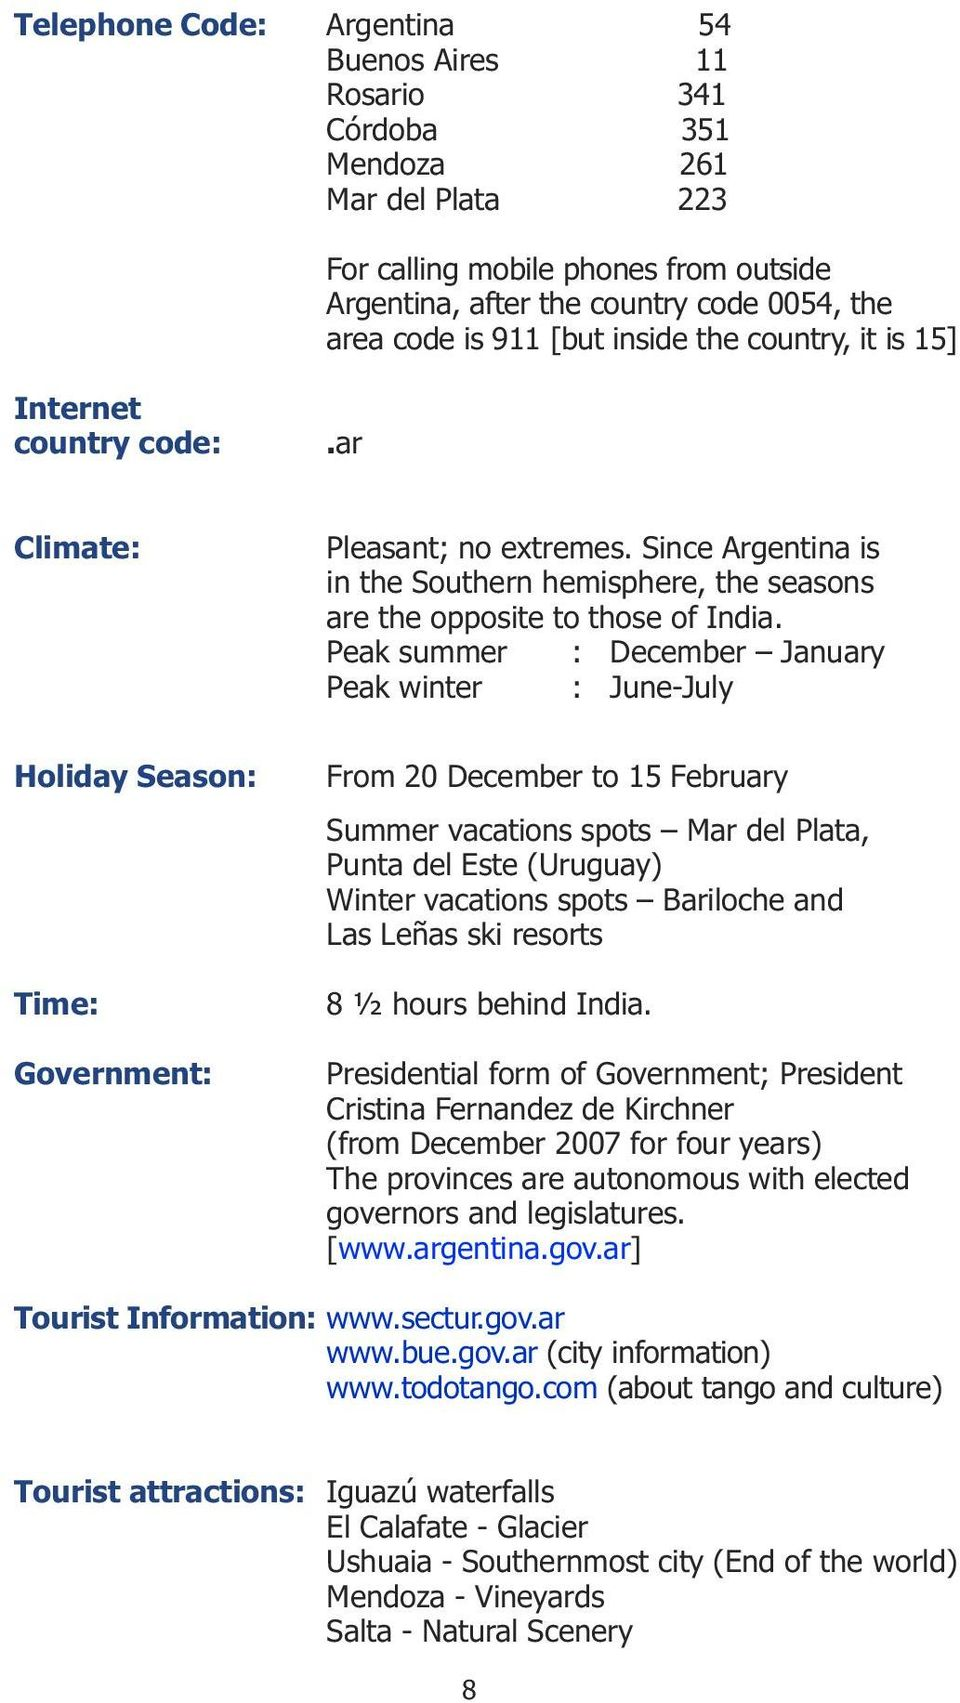 Since Argentina is in the Southern hemisphere, the seasons are the opposite to those of India.